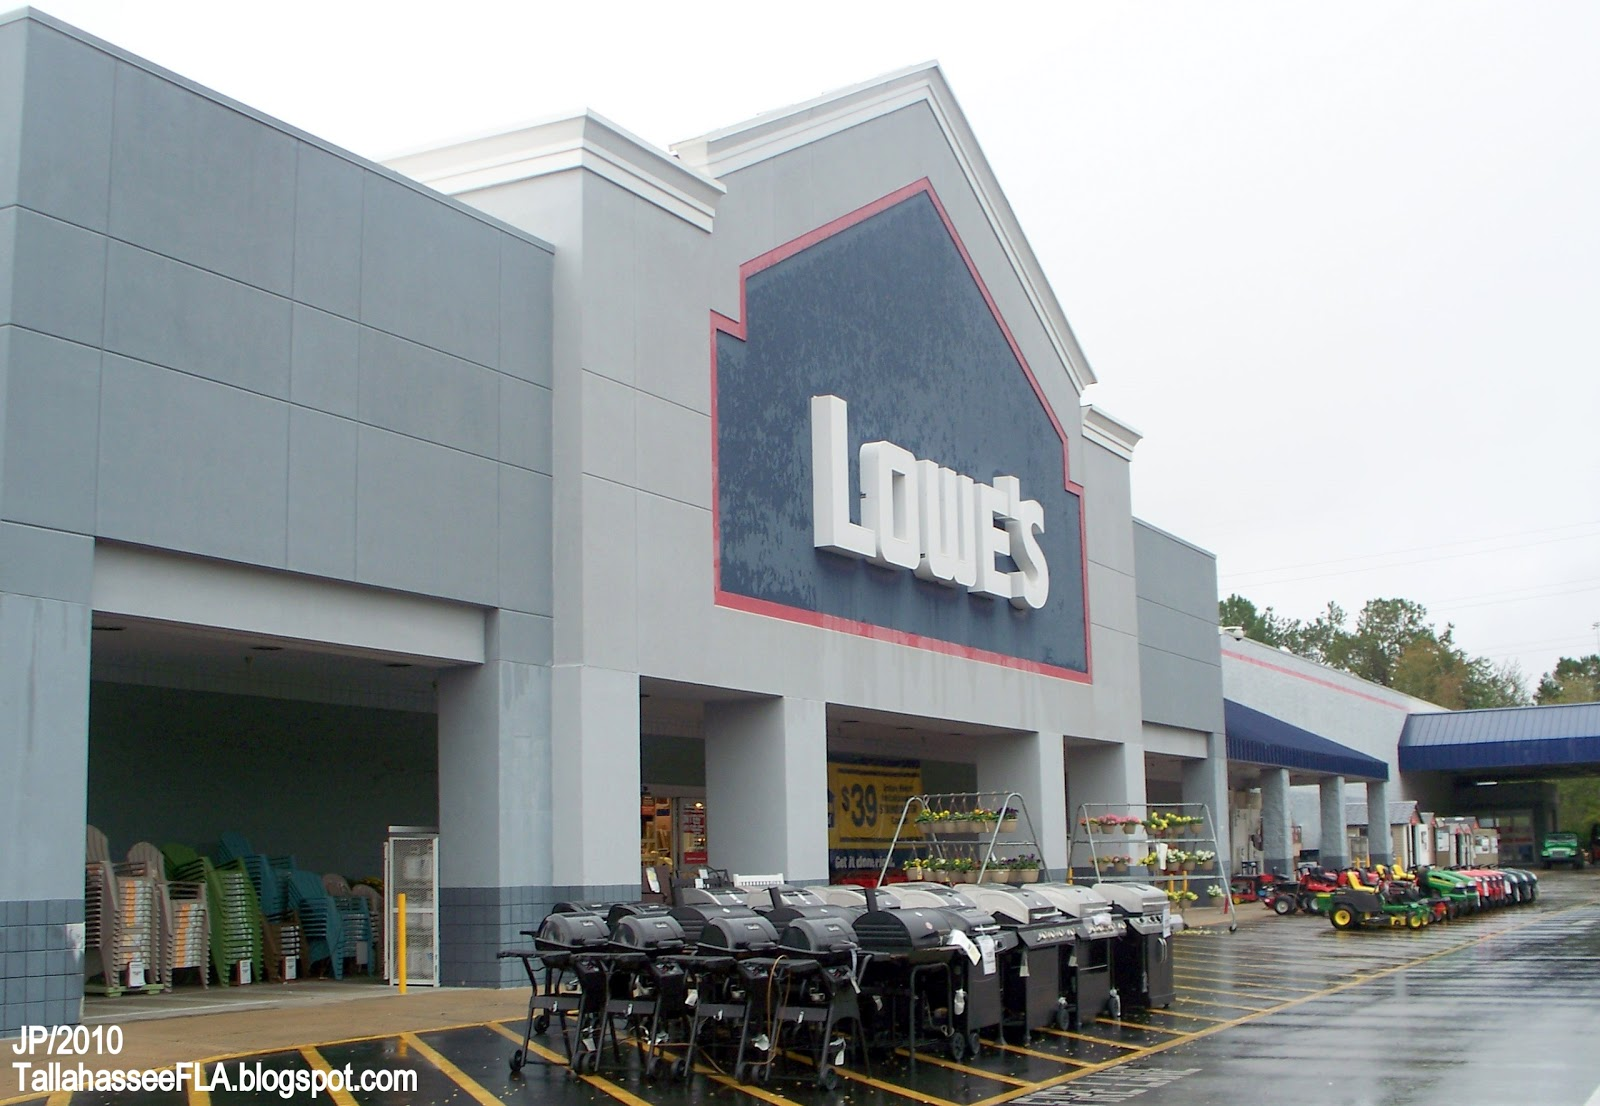 Remarkable Lowe's Home Improvement Store 1600 x 1106 · 249 kB · jpeg